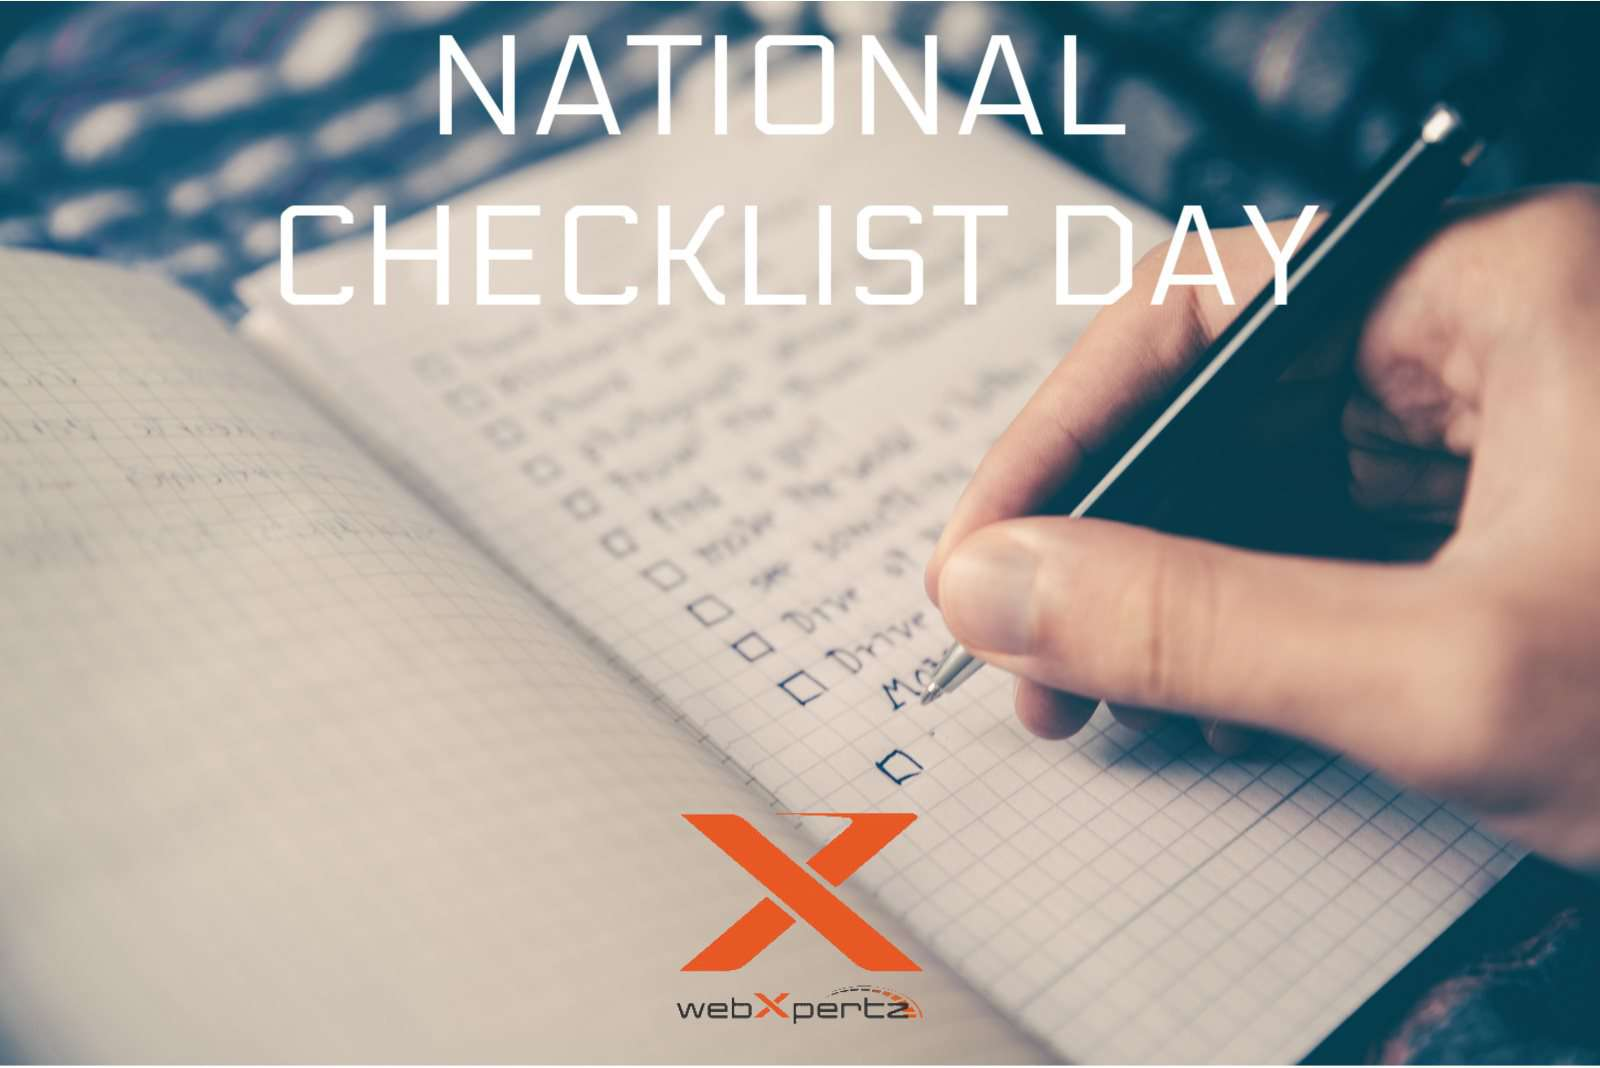 National Checklist Day Wishes Unique Image